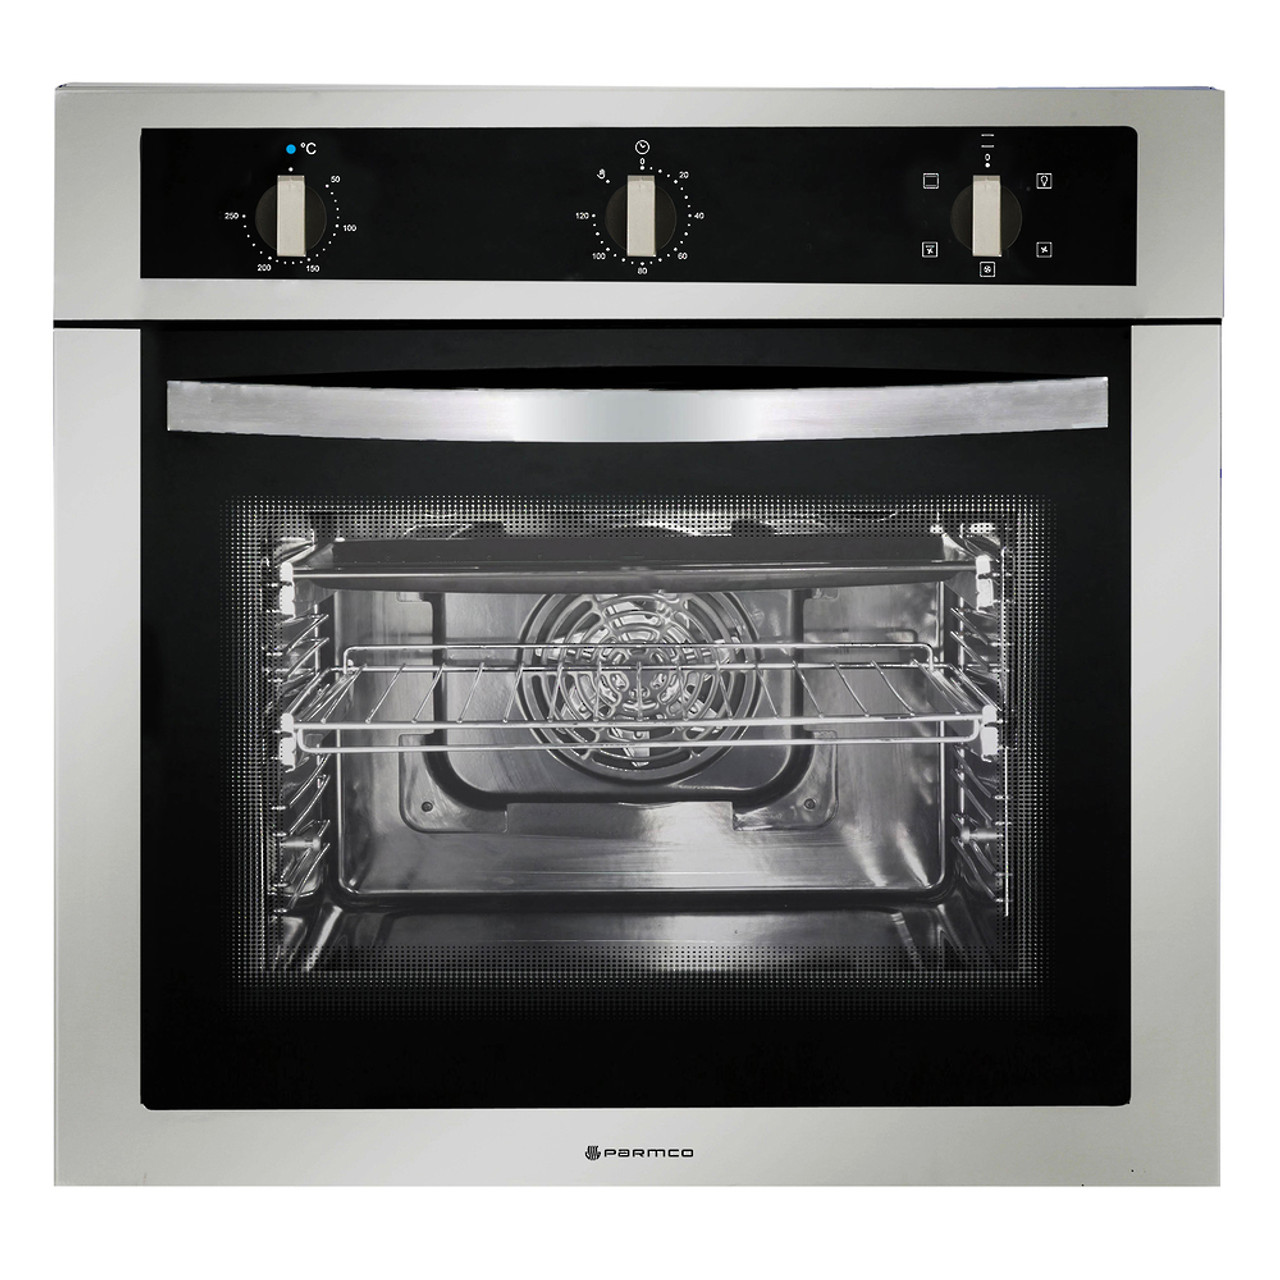 600mm 58Litre Oven, 5 Function, Stainless Steel